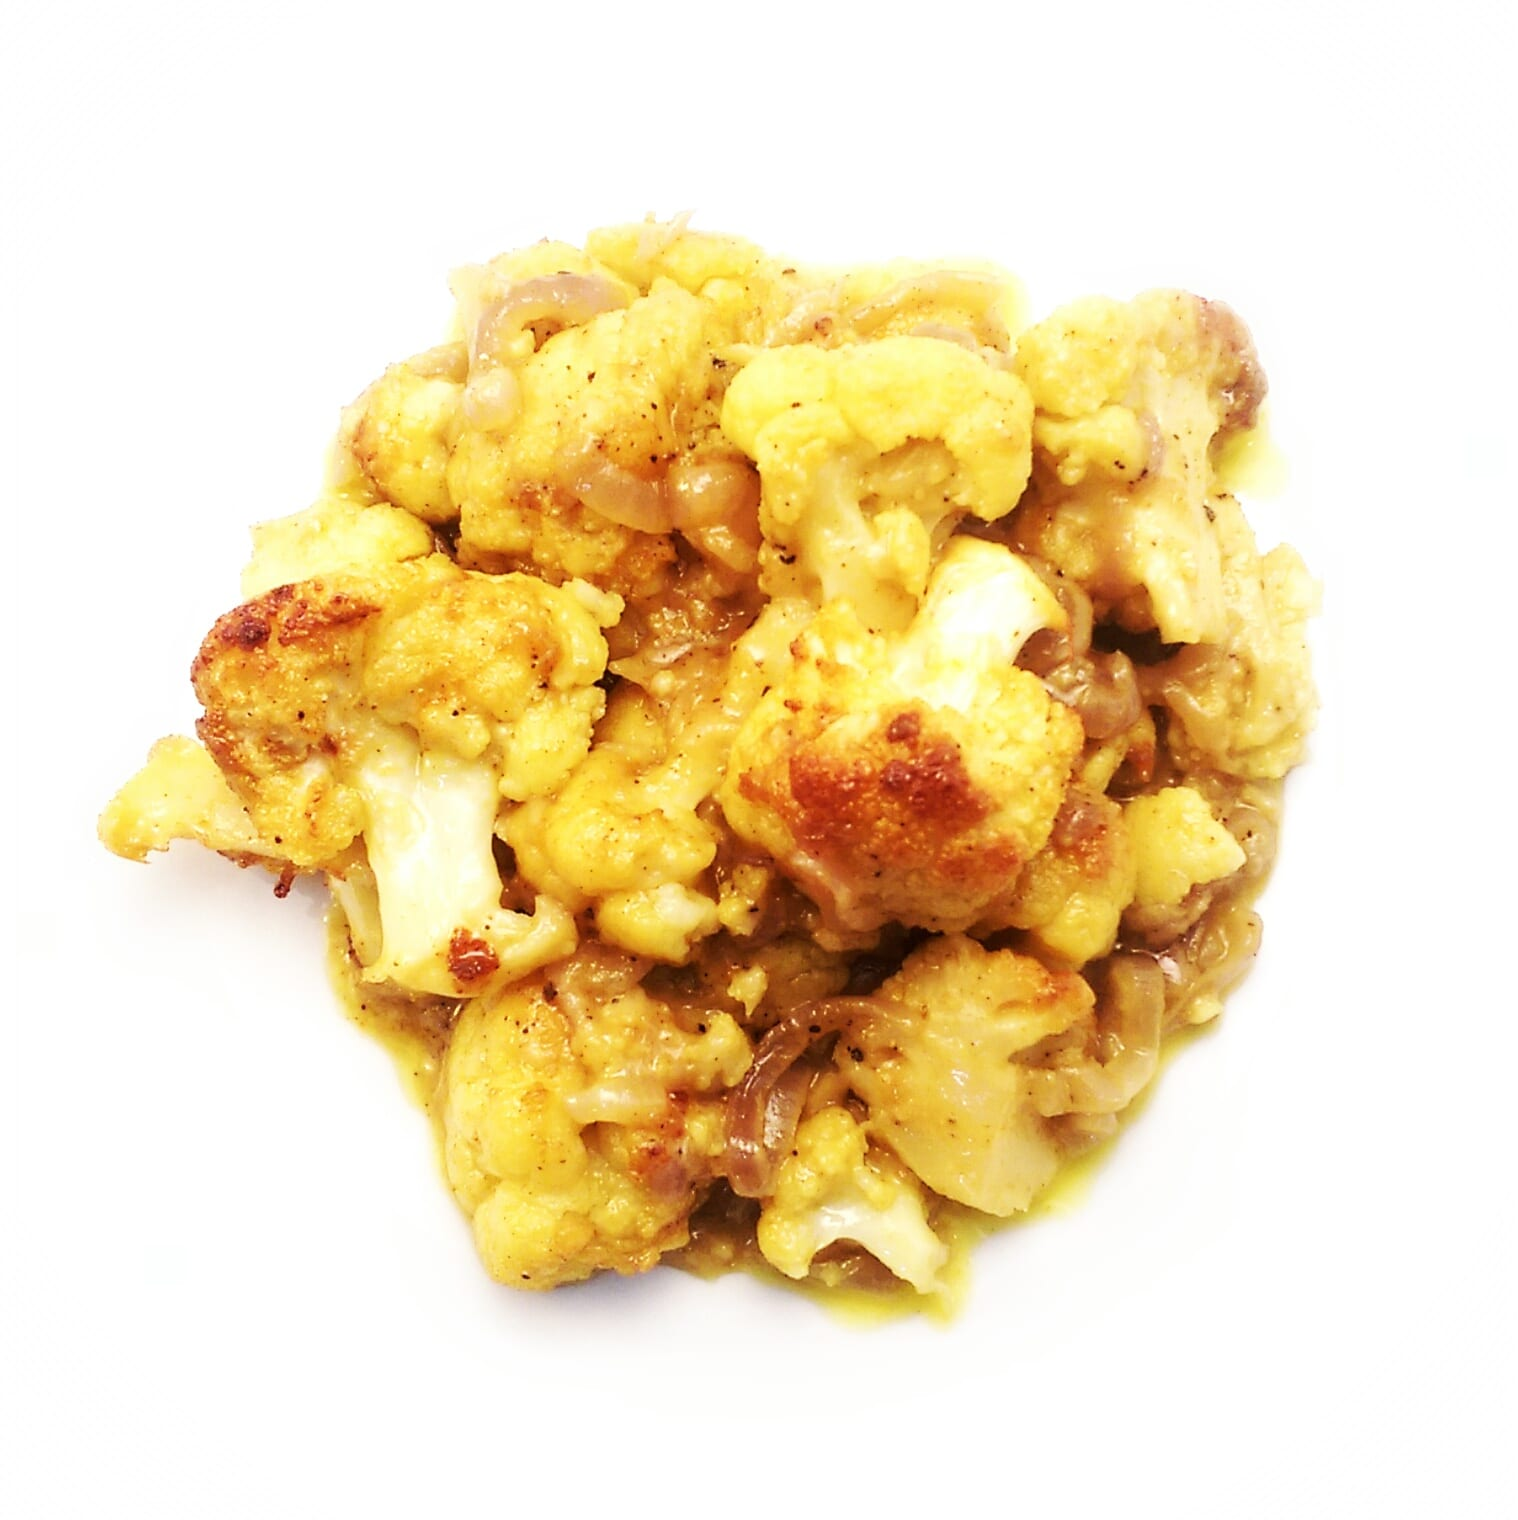 Melted cauliflower